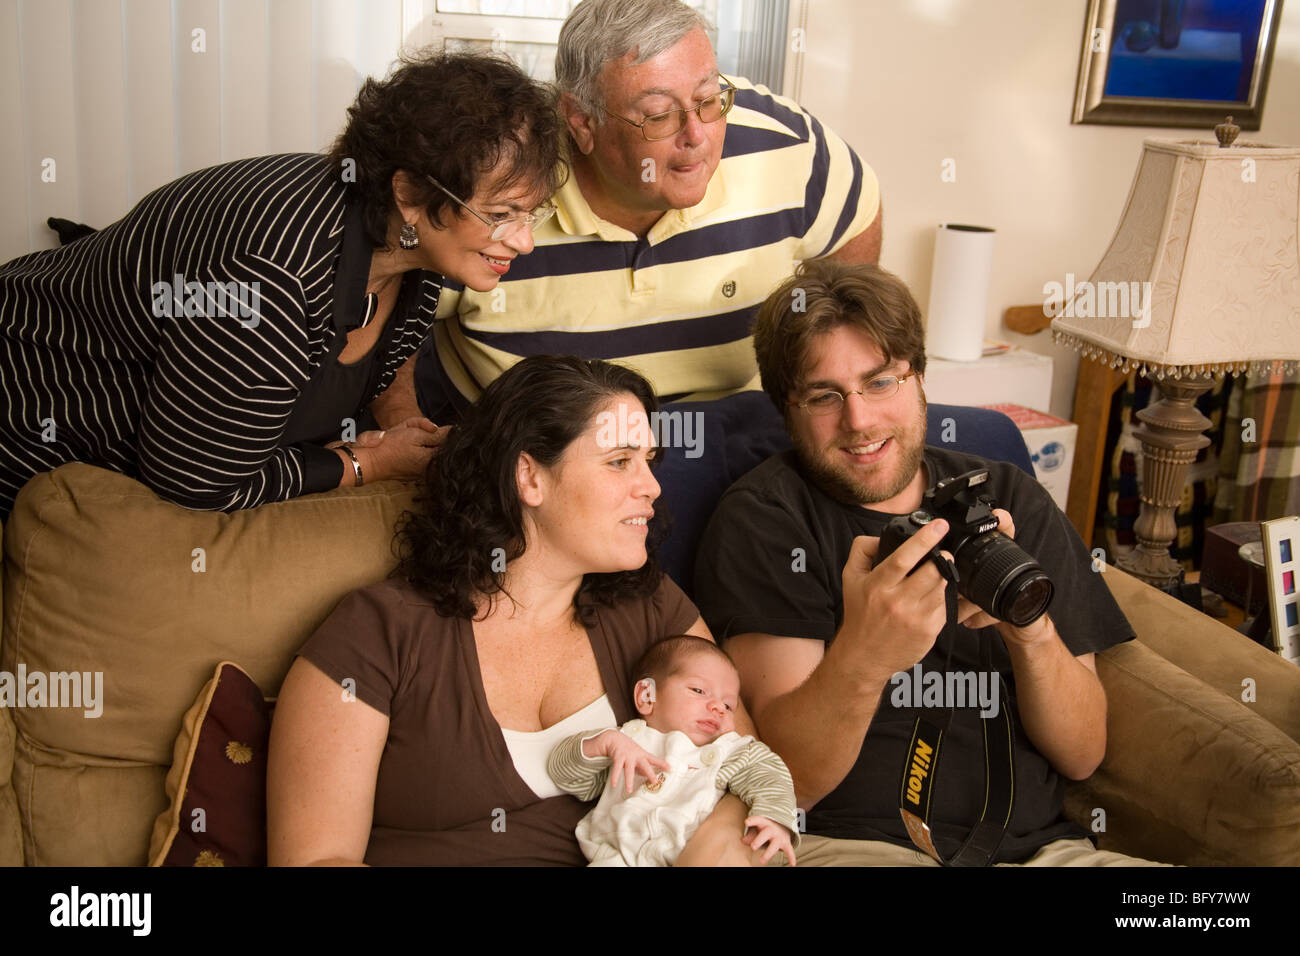 A young couple on a sofa holding a baby and her parents all look at a photo on the back of a digital SLR camera - Stock Image